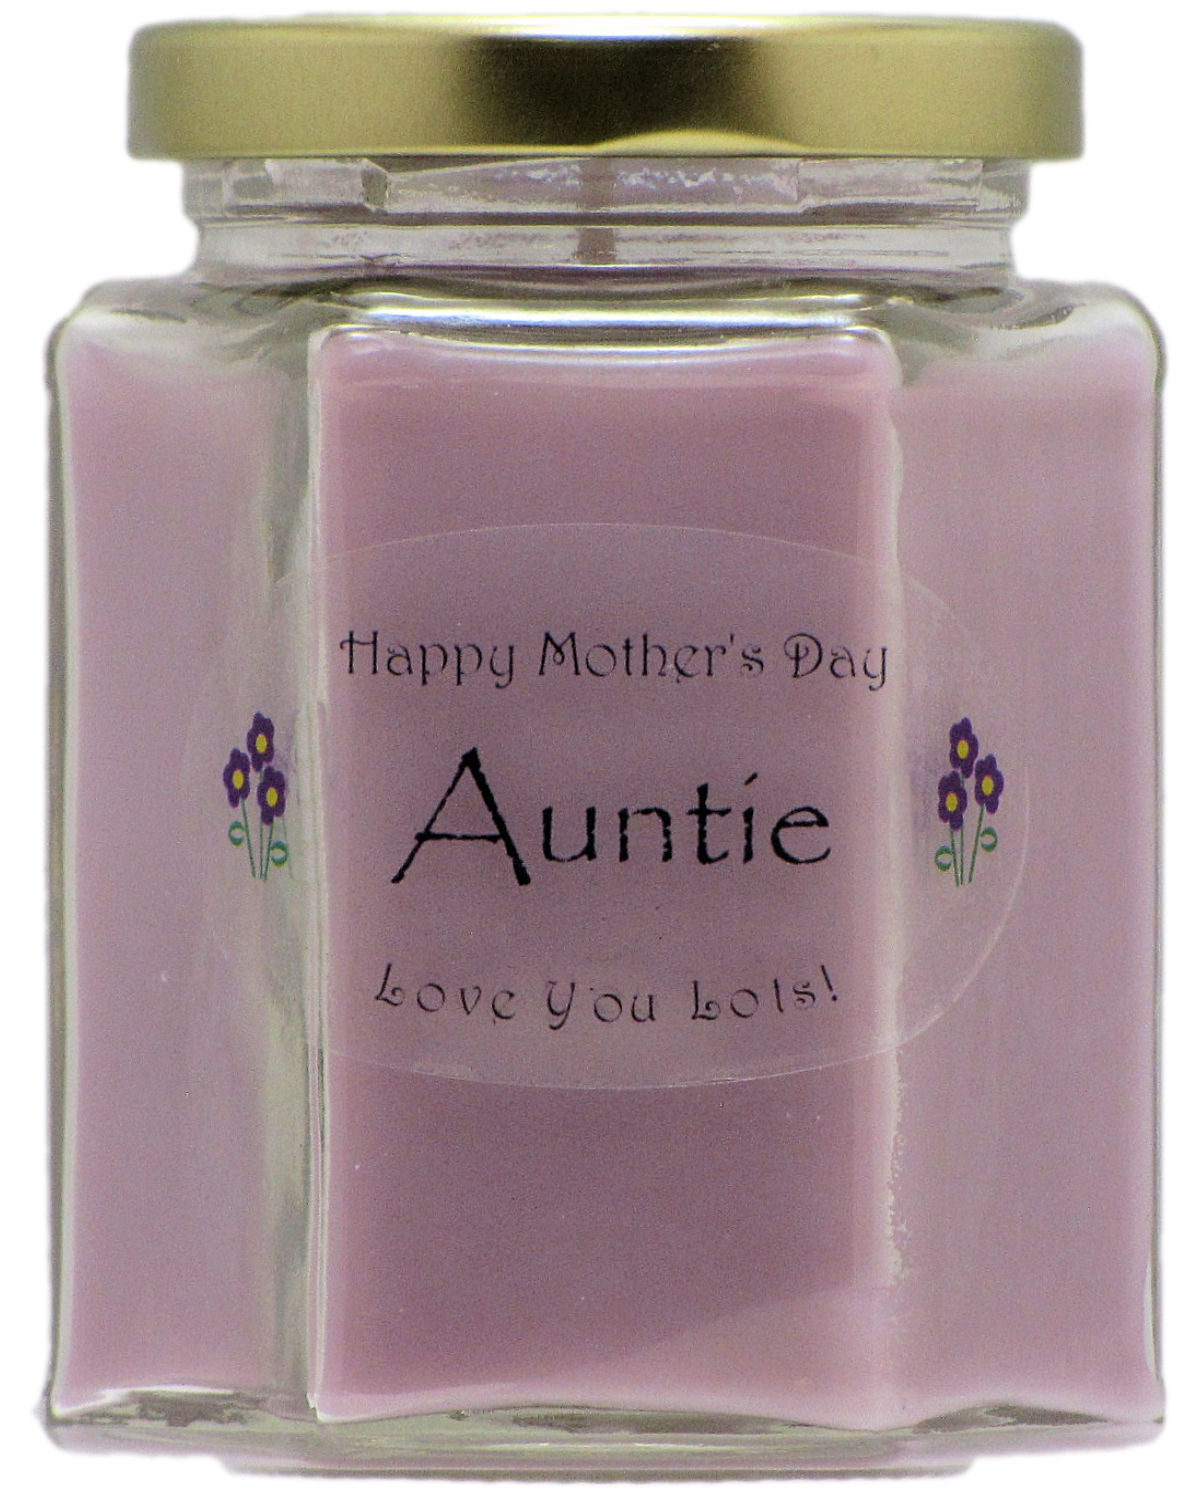 auntie happy mother s day candles just makes scents candles and